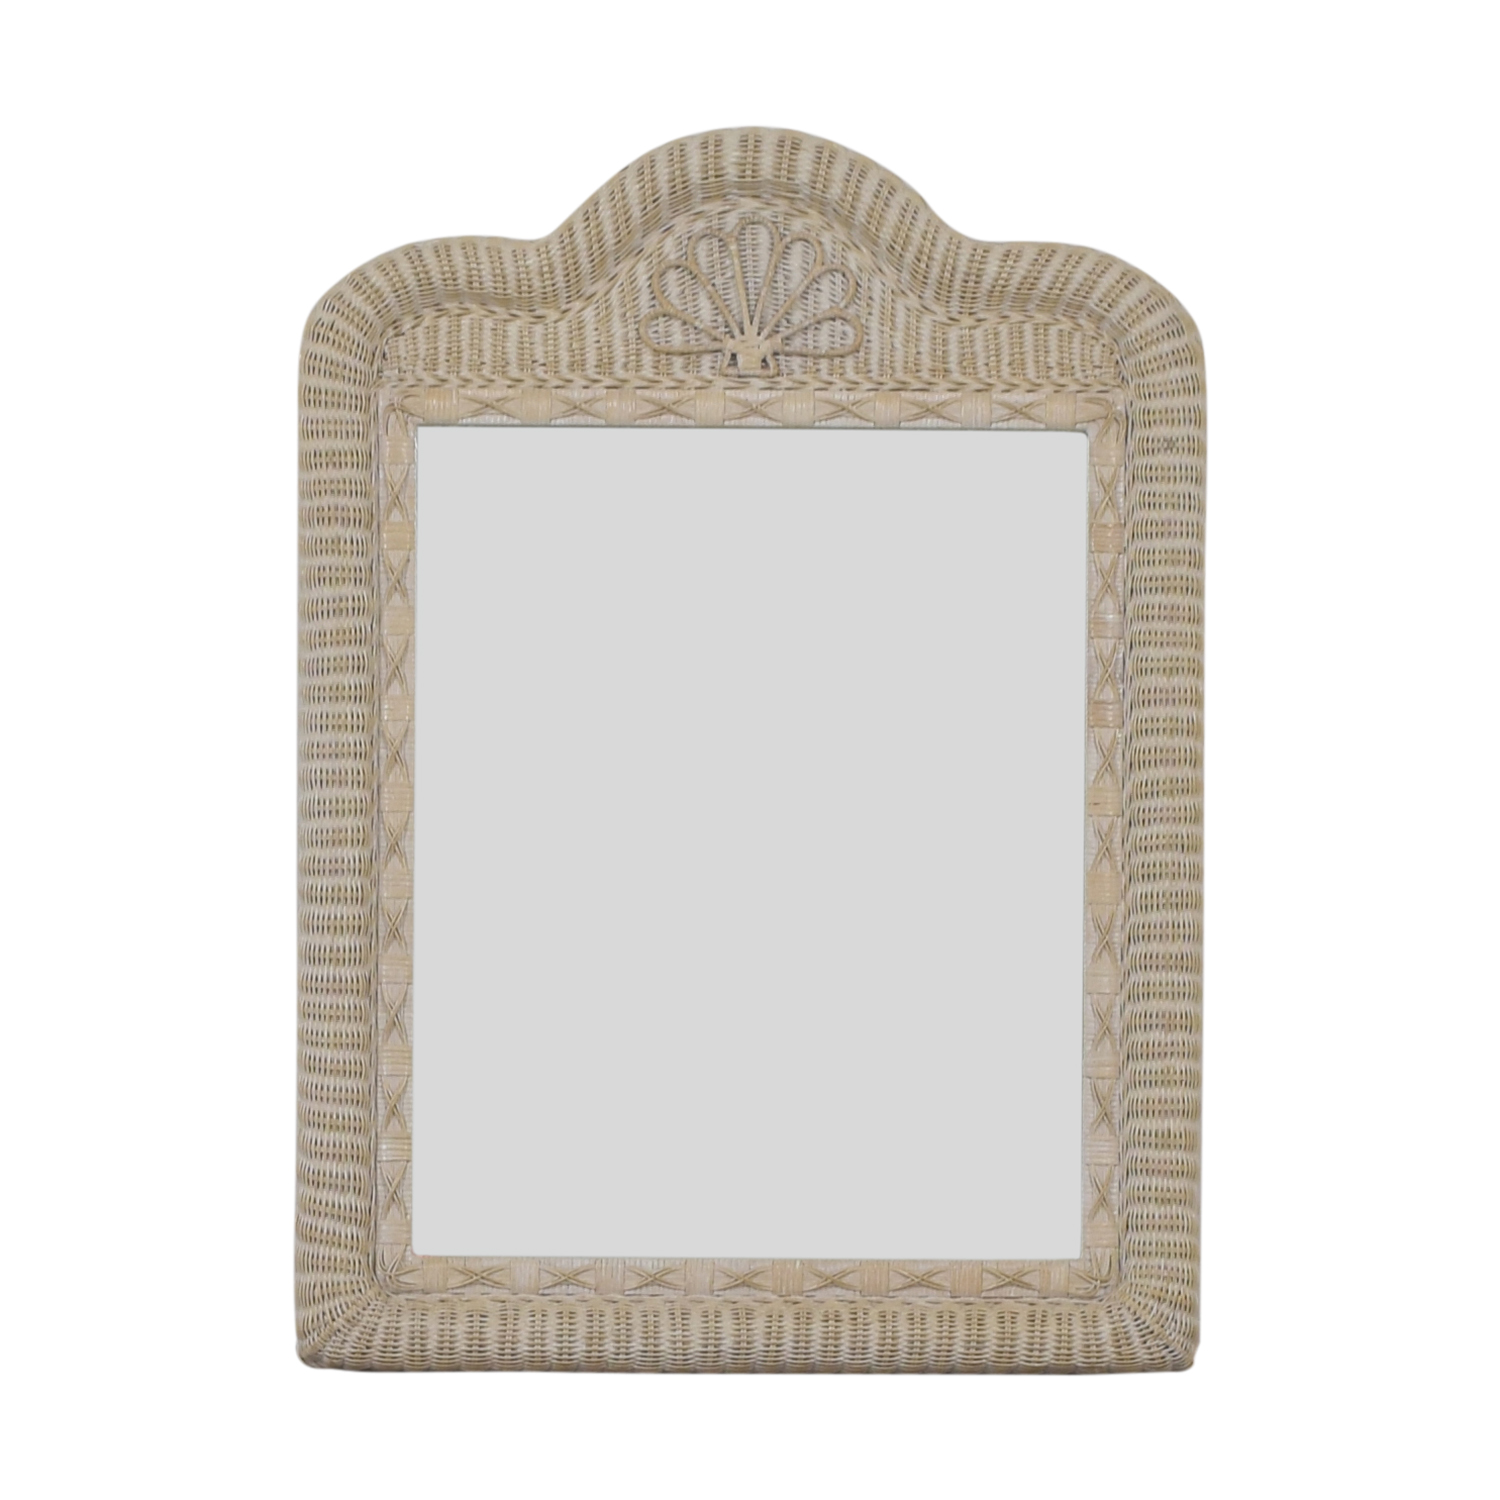 Wicker Mirror second hand